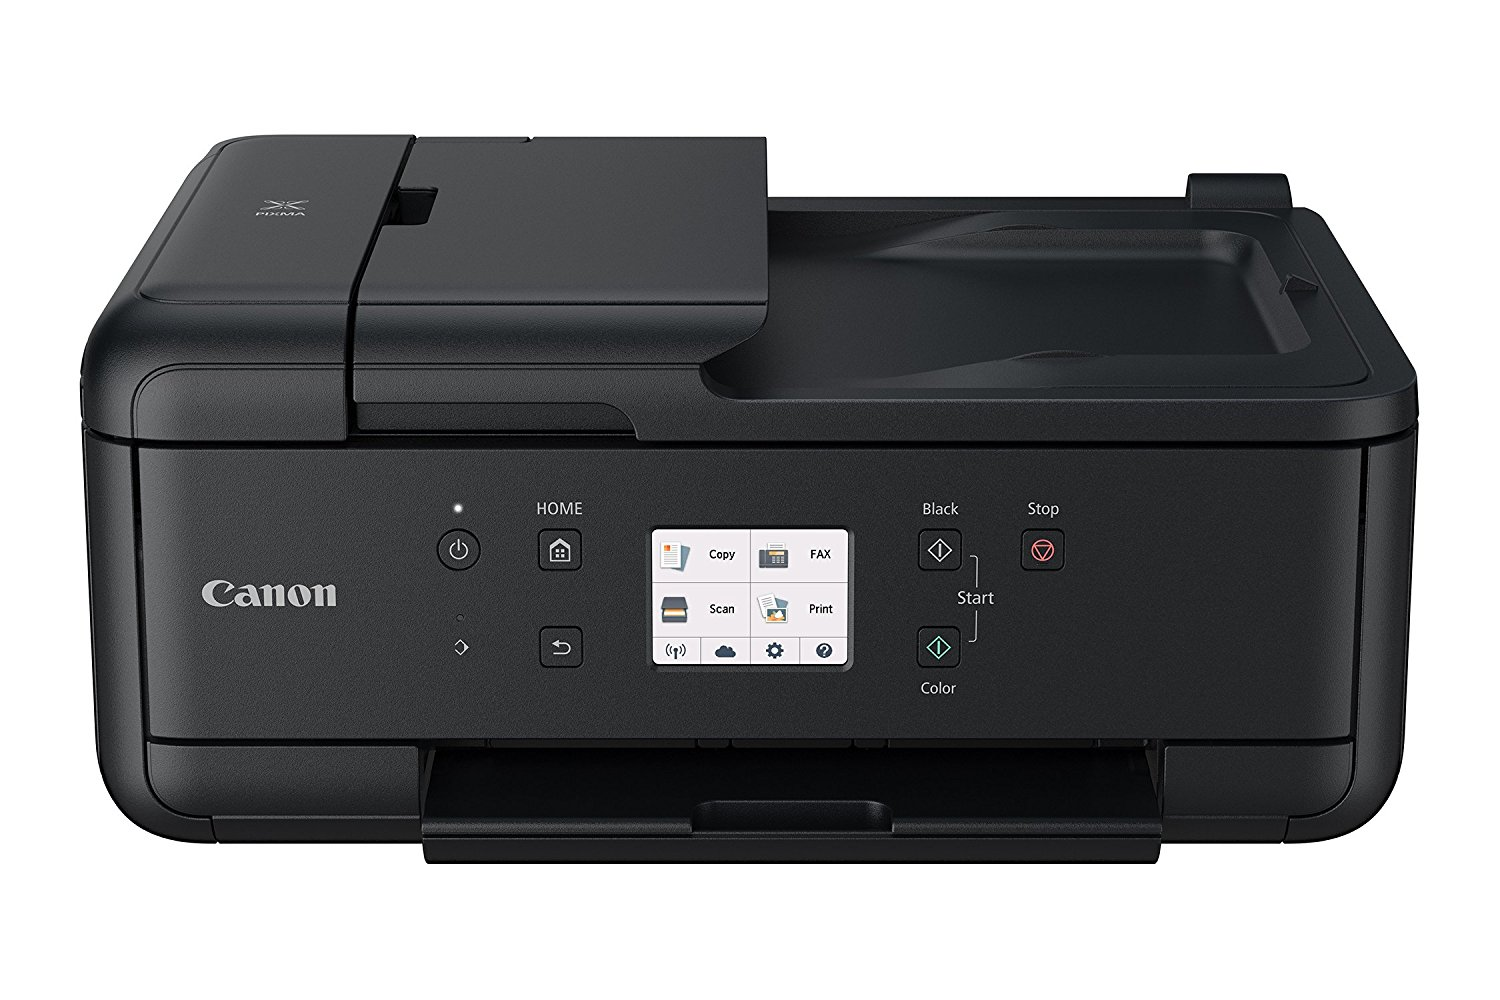 CANON PIXMA MX722 WINDOWS 10 DRIVER DOWNLOAD